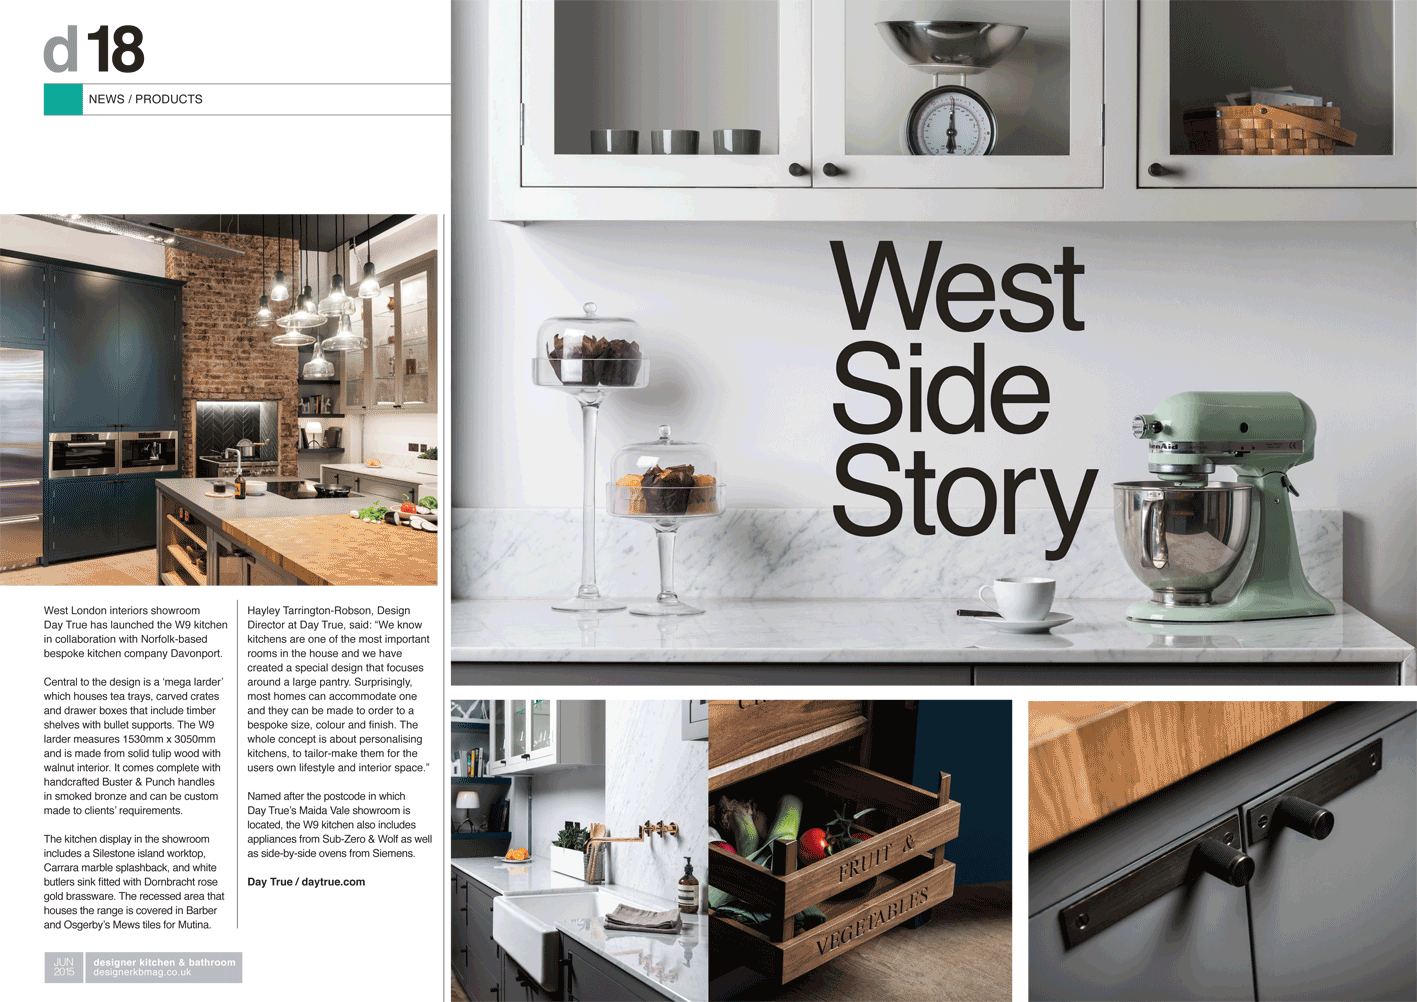 West london interiors show room day true has launched the w9 kitchen in collaboration with norfolk0based